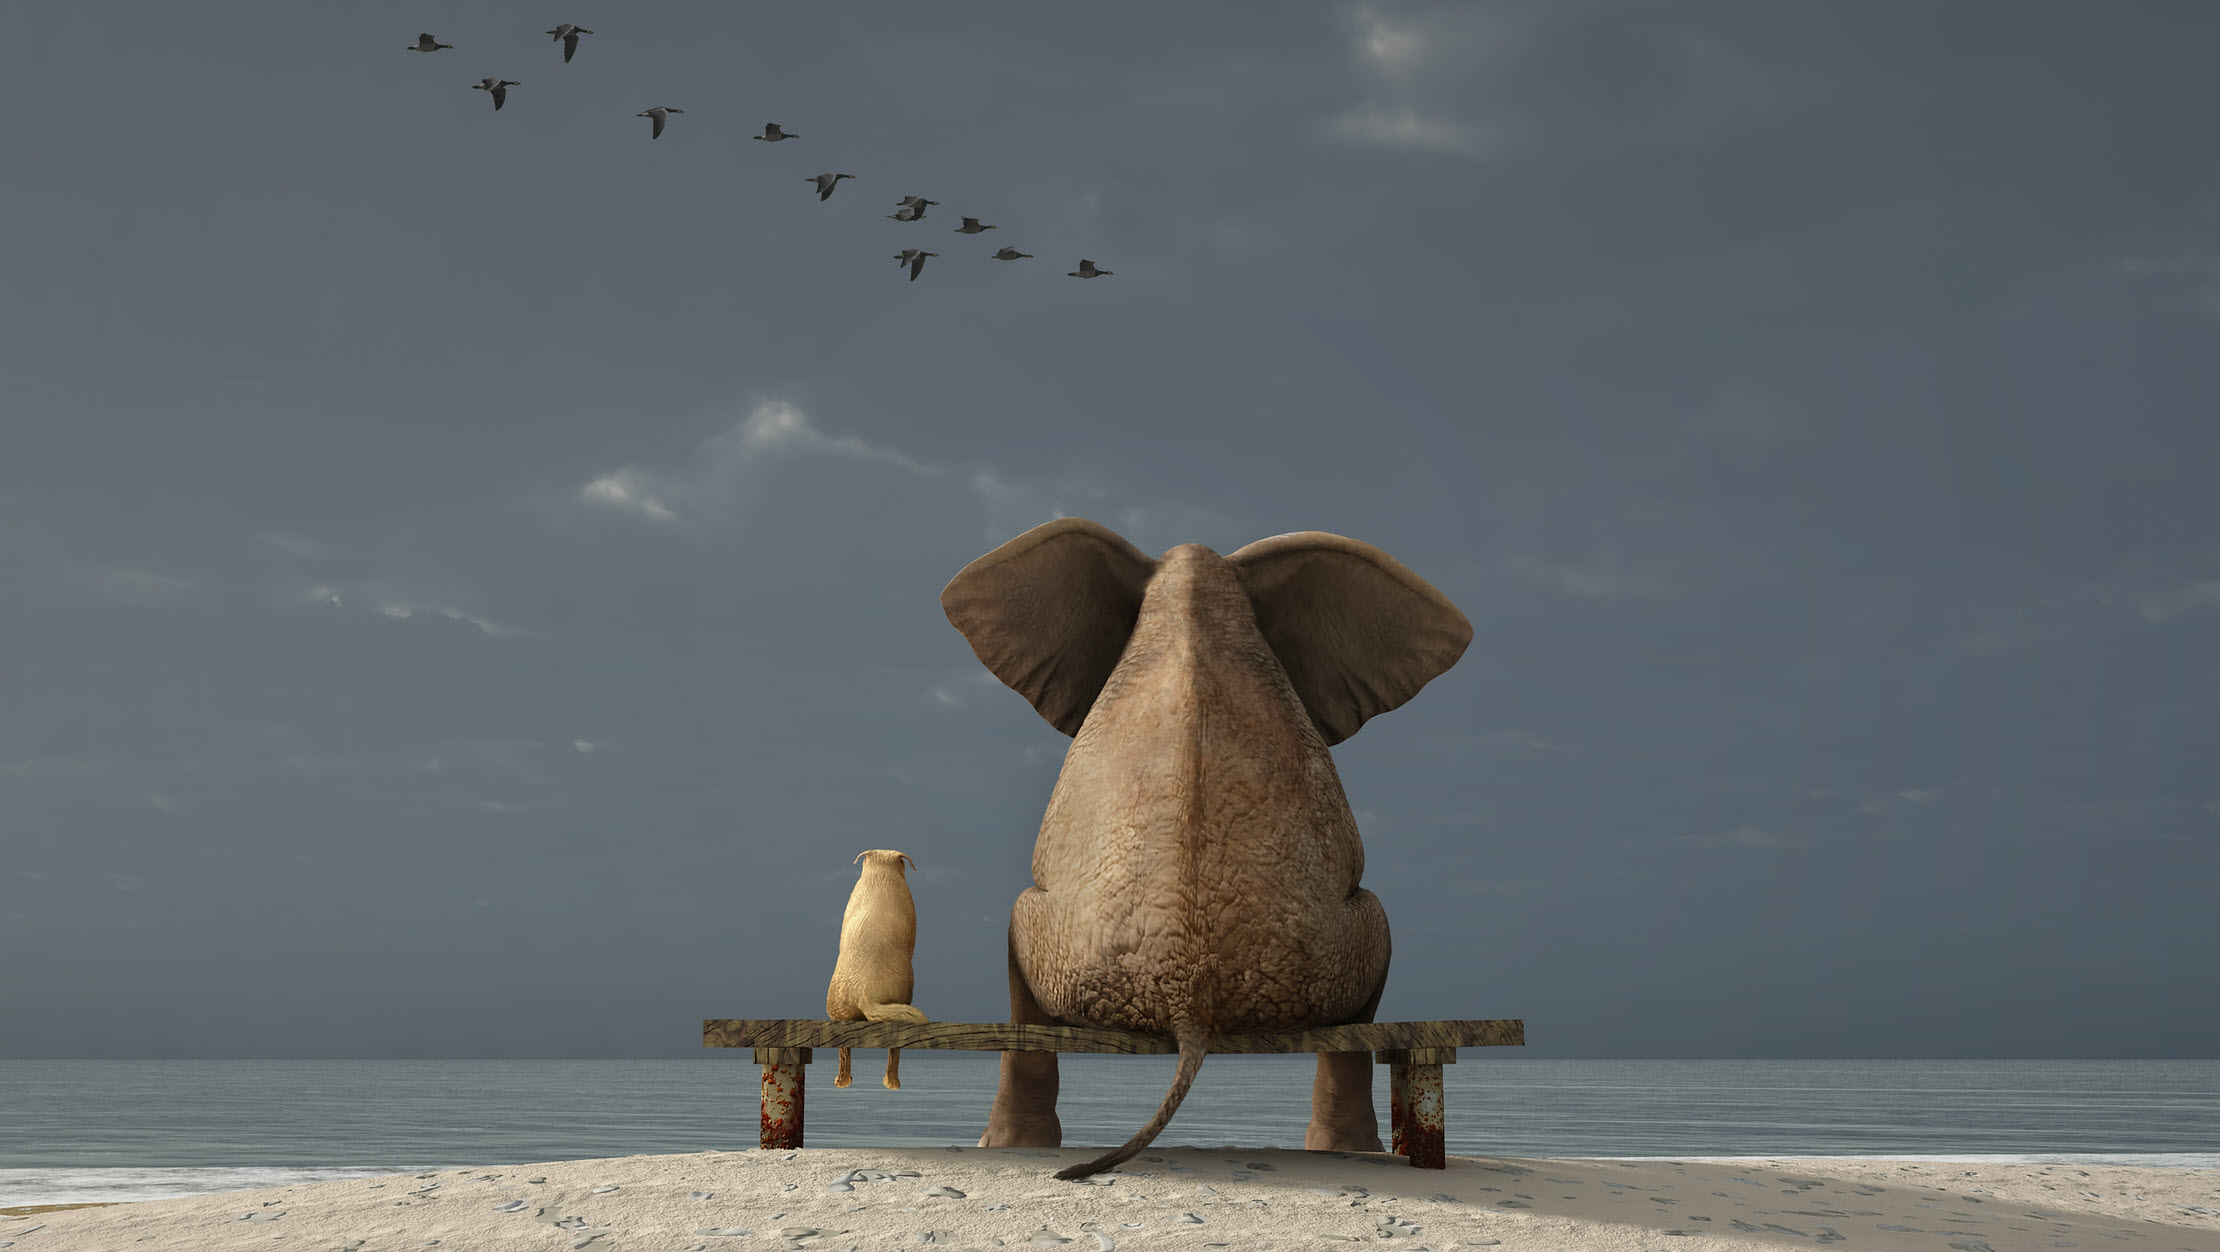 Elephant Staring Out into Ocean